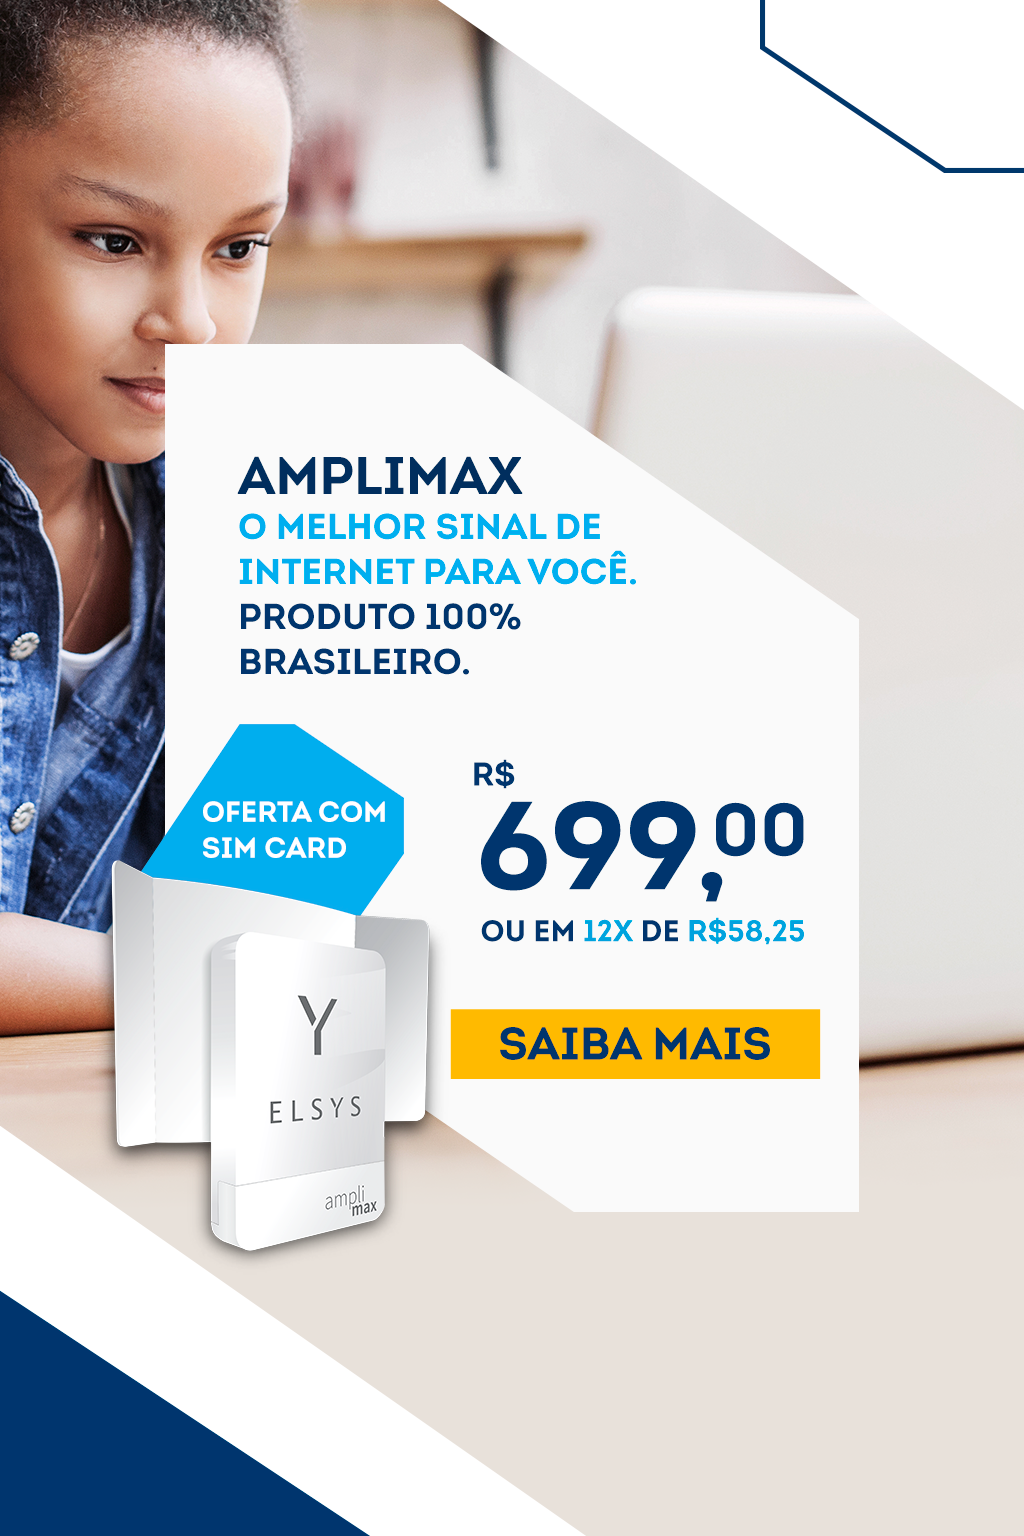 Amplimax